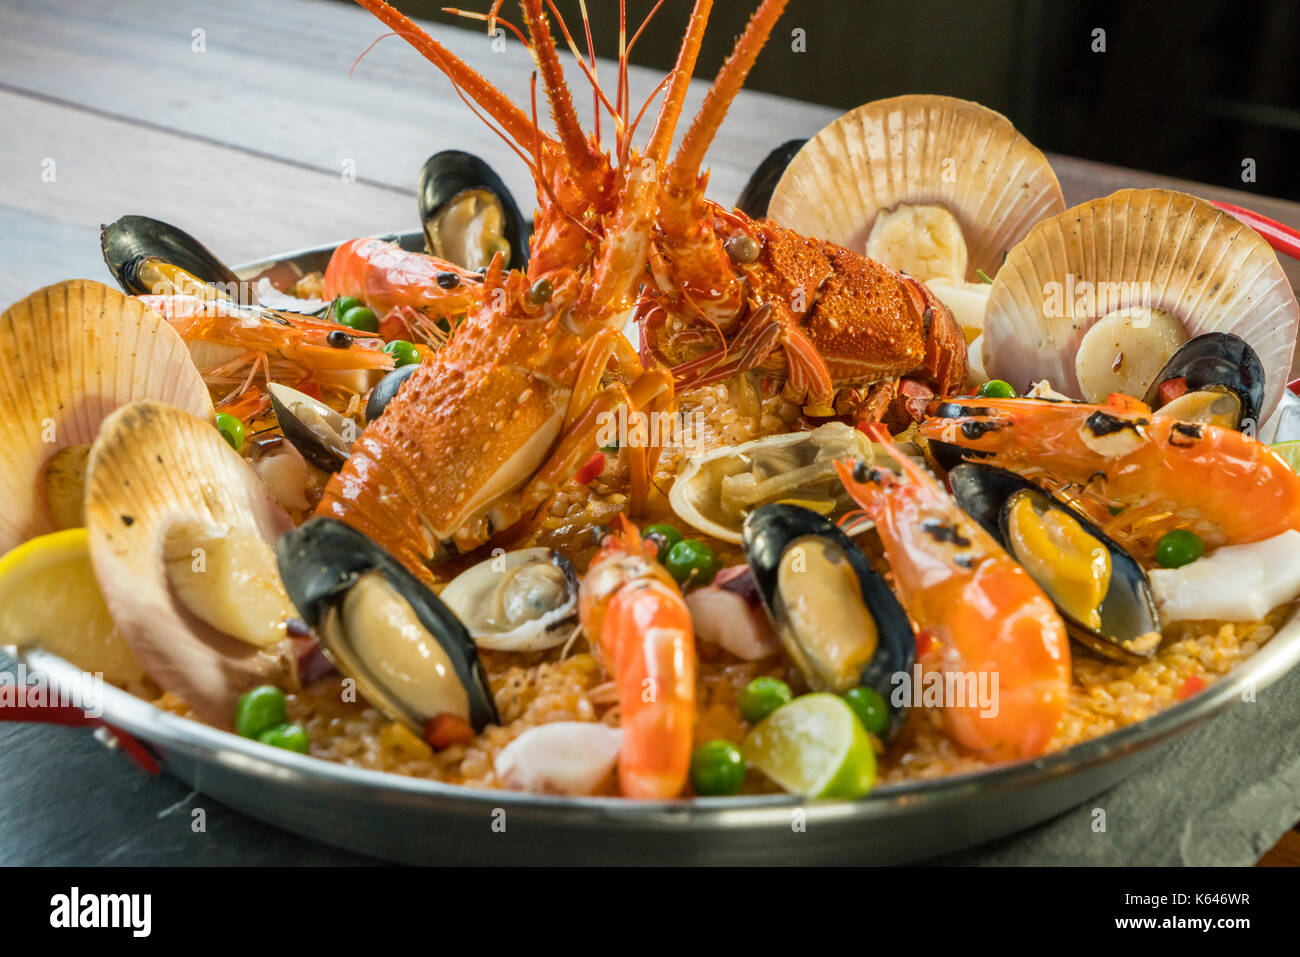 Gourmet seafood Valencia paella with fresh langoustine, clams, mussels and squid on savory saffron rice with prawn, scollops, mussels and lime slices, - Stock Image